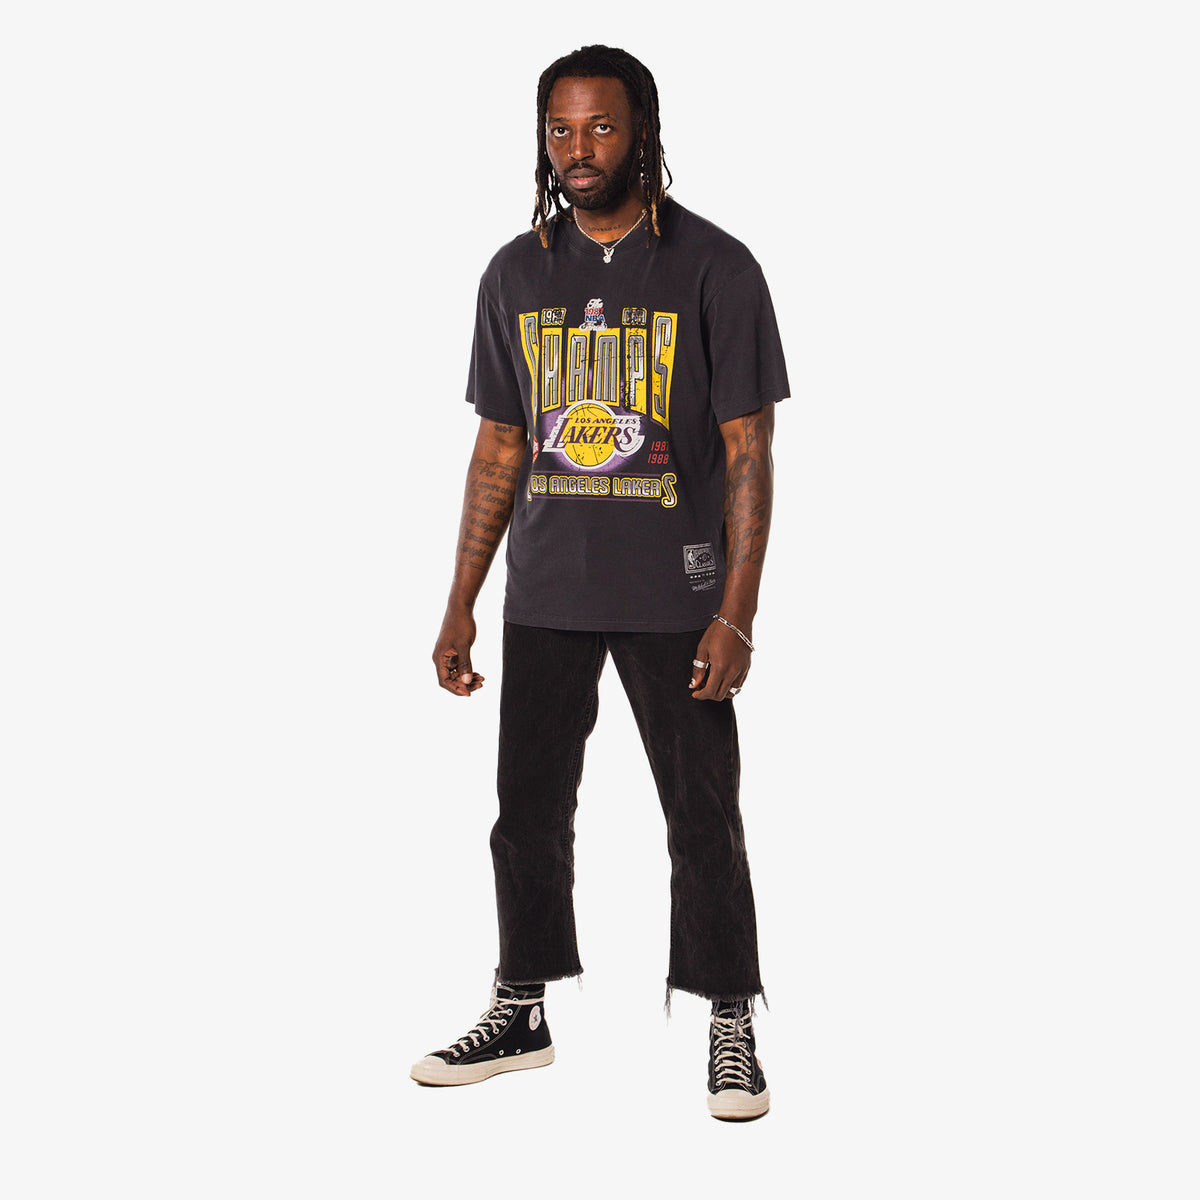 Los Angeles Lakers Vintage Winner Takes All T-Shirt - Faded Black